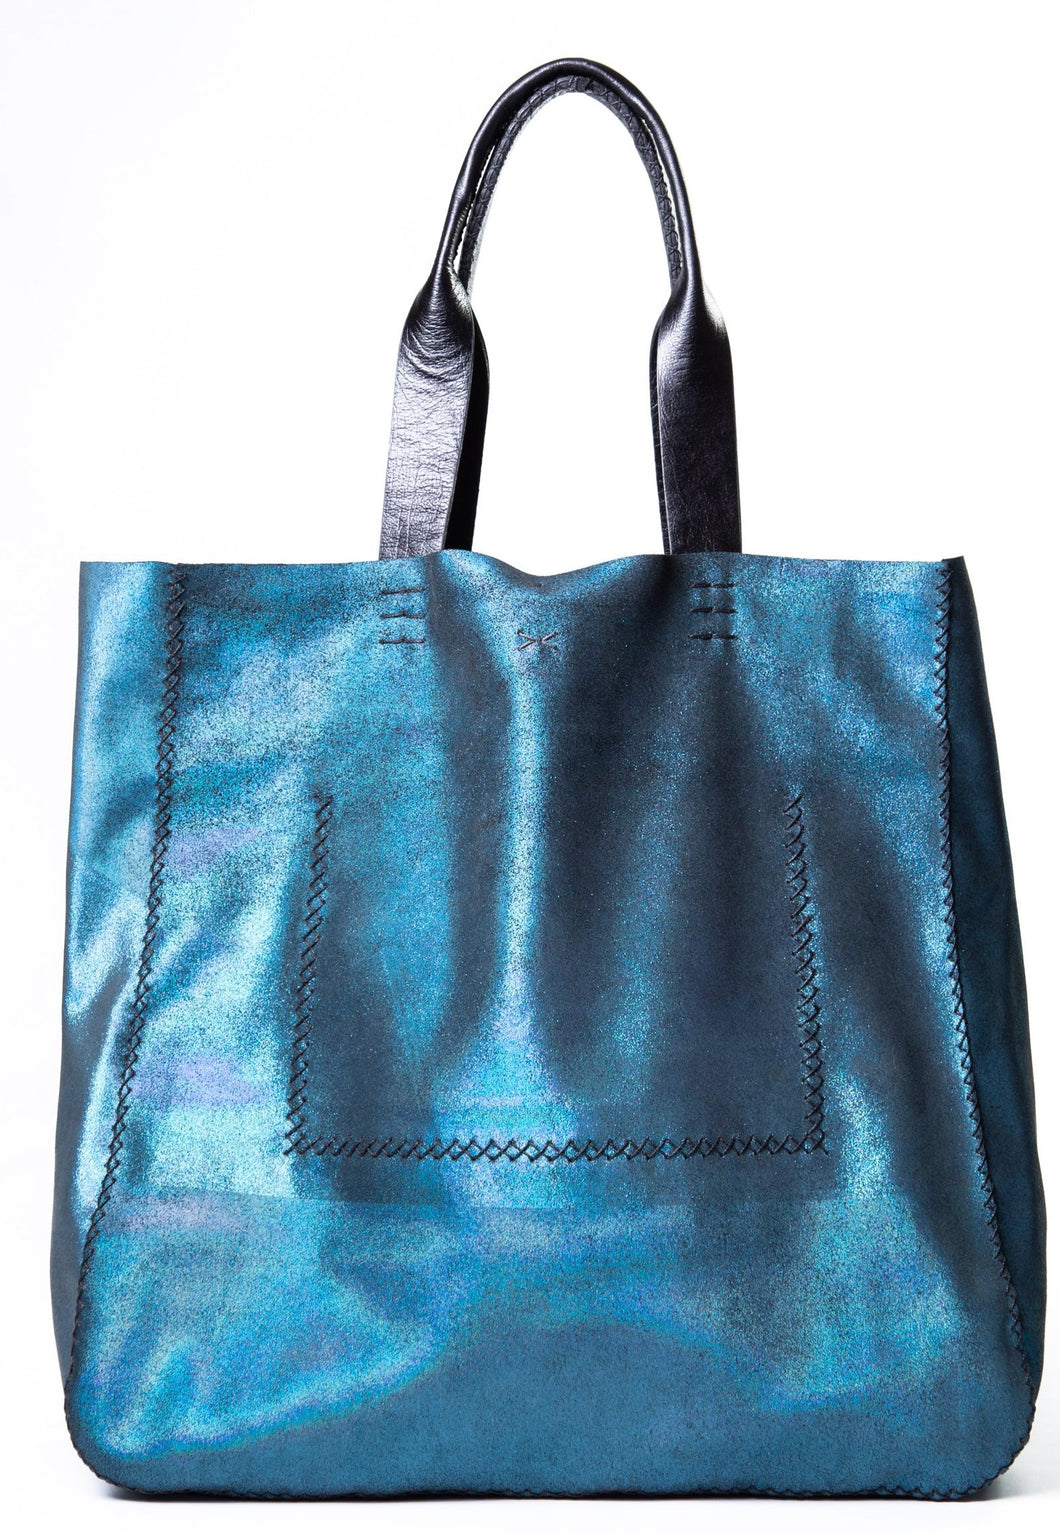 ipanema bag | green glitter leather